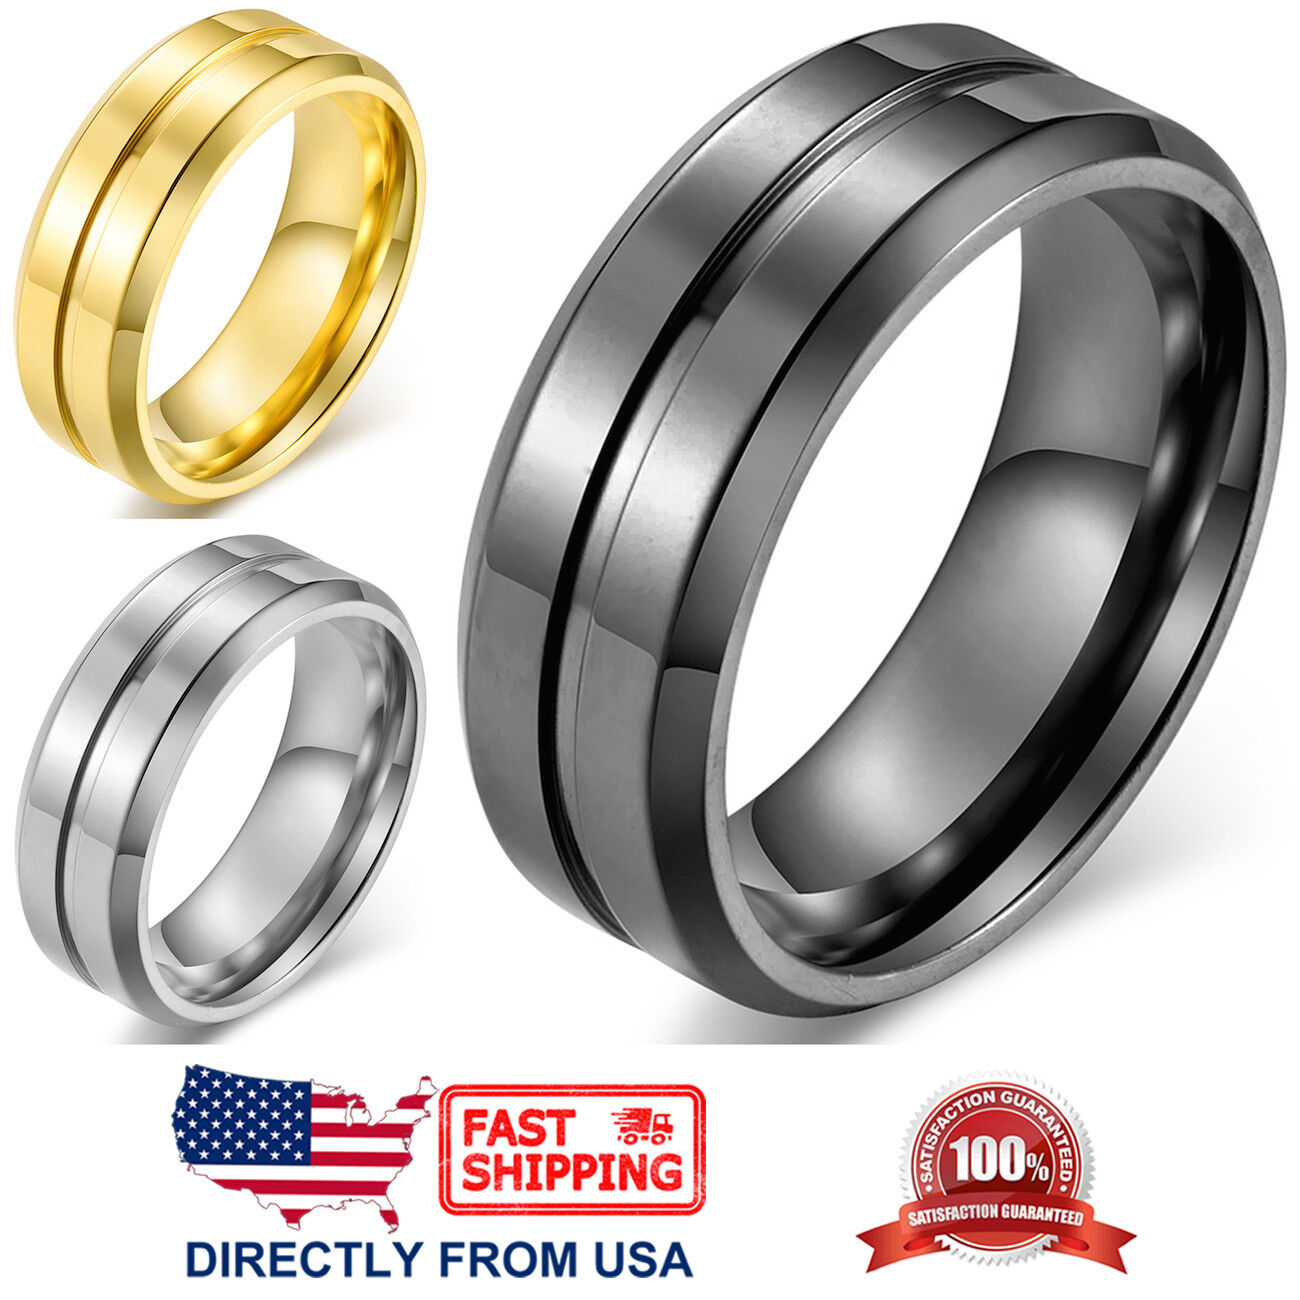 Men's Ring, Stainless Steel 8mm Polished Wedding Band (Silver, Gold, or Black) Jewelry & Watches